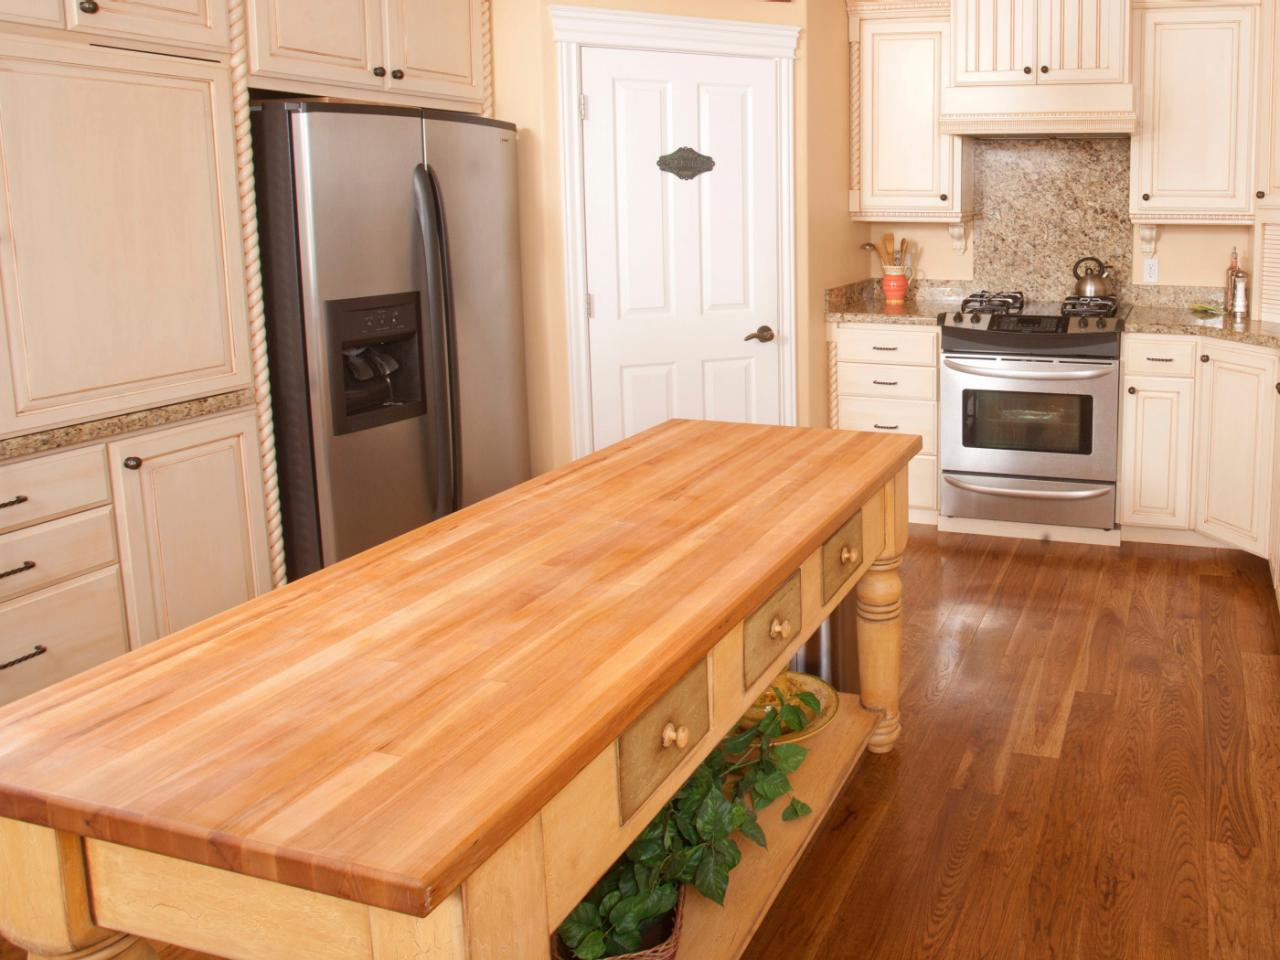 Butcher Block Island For Small Kitchen